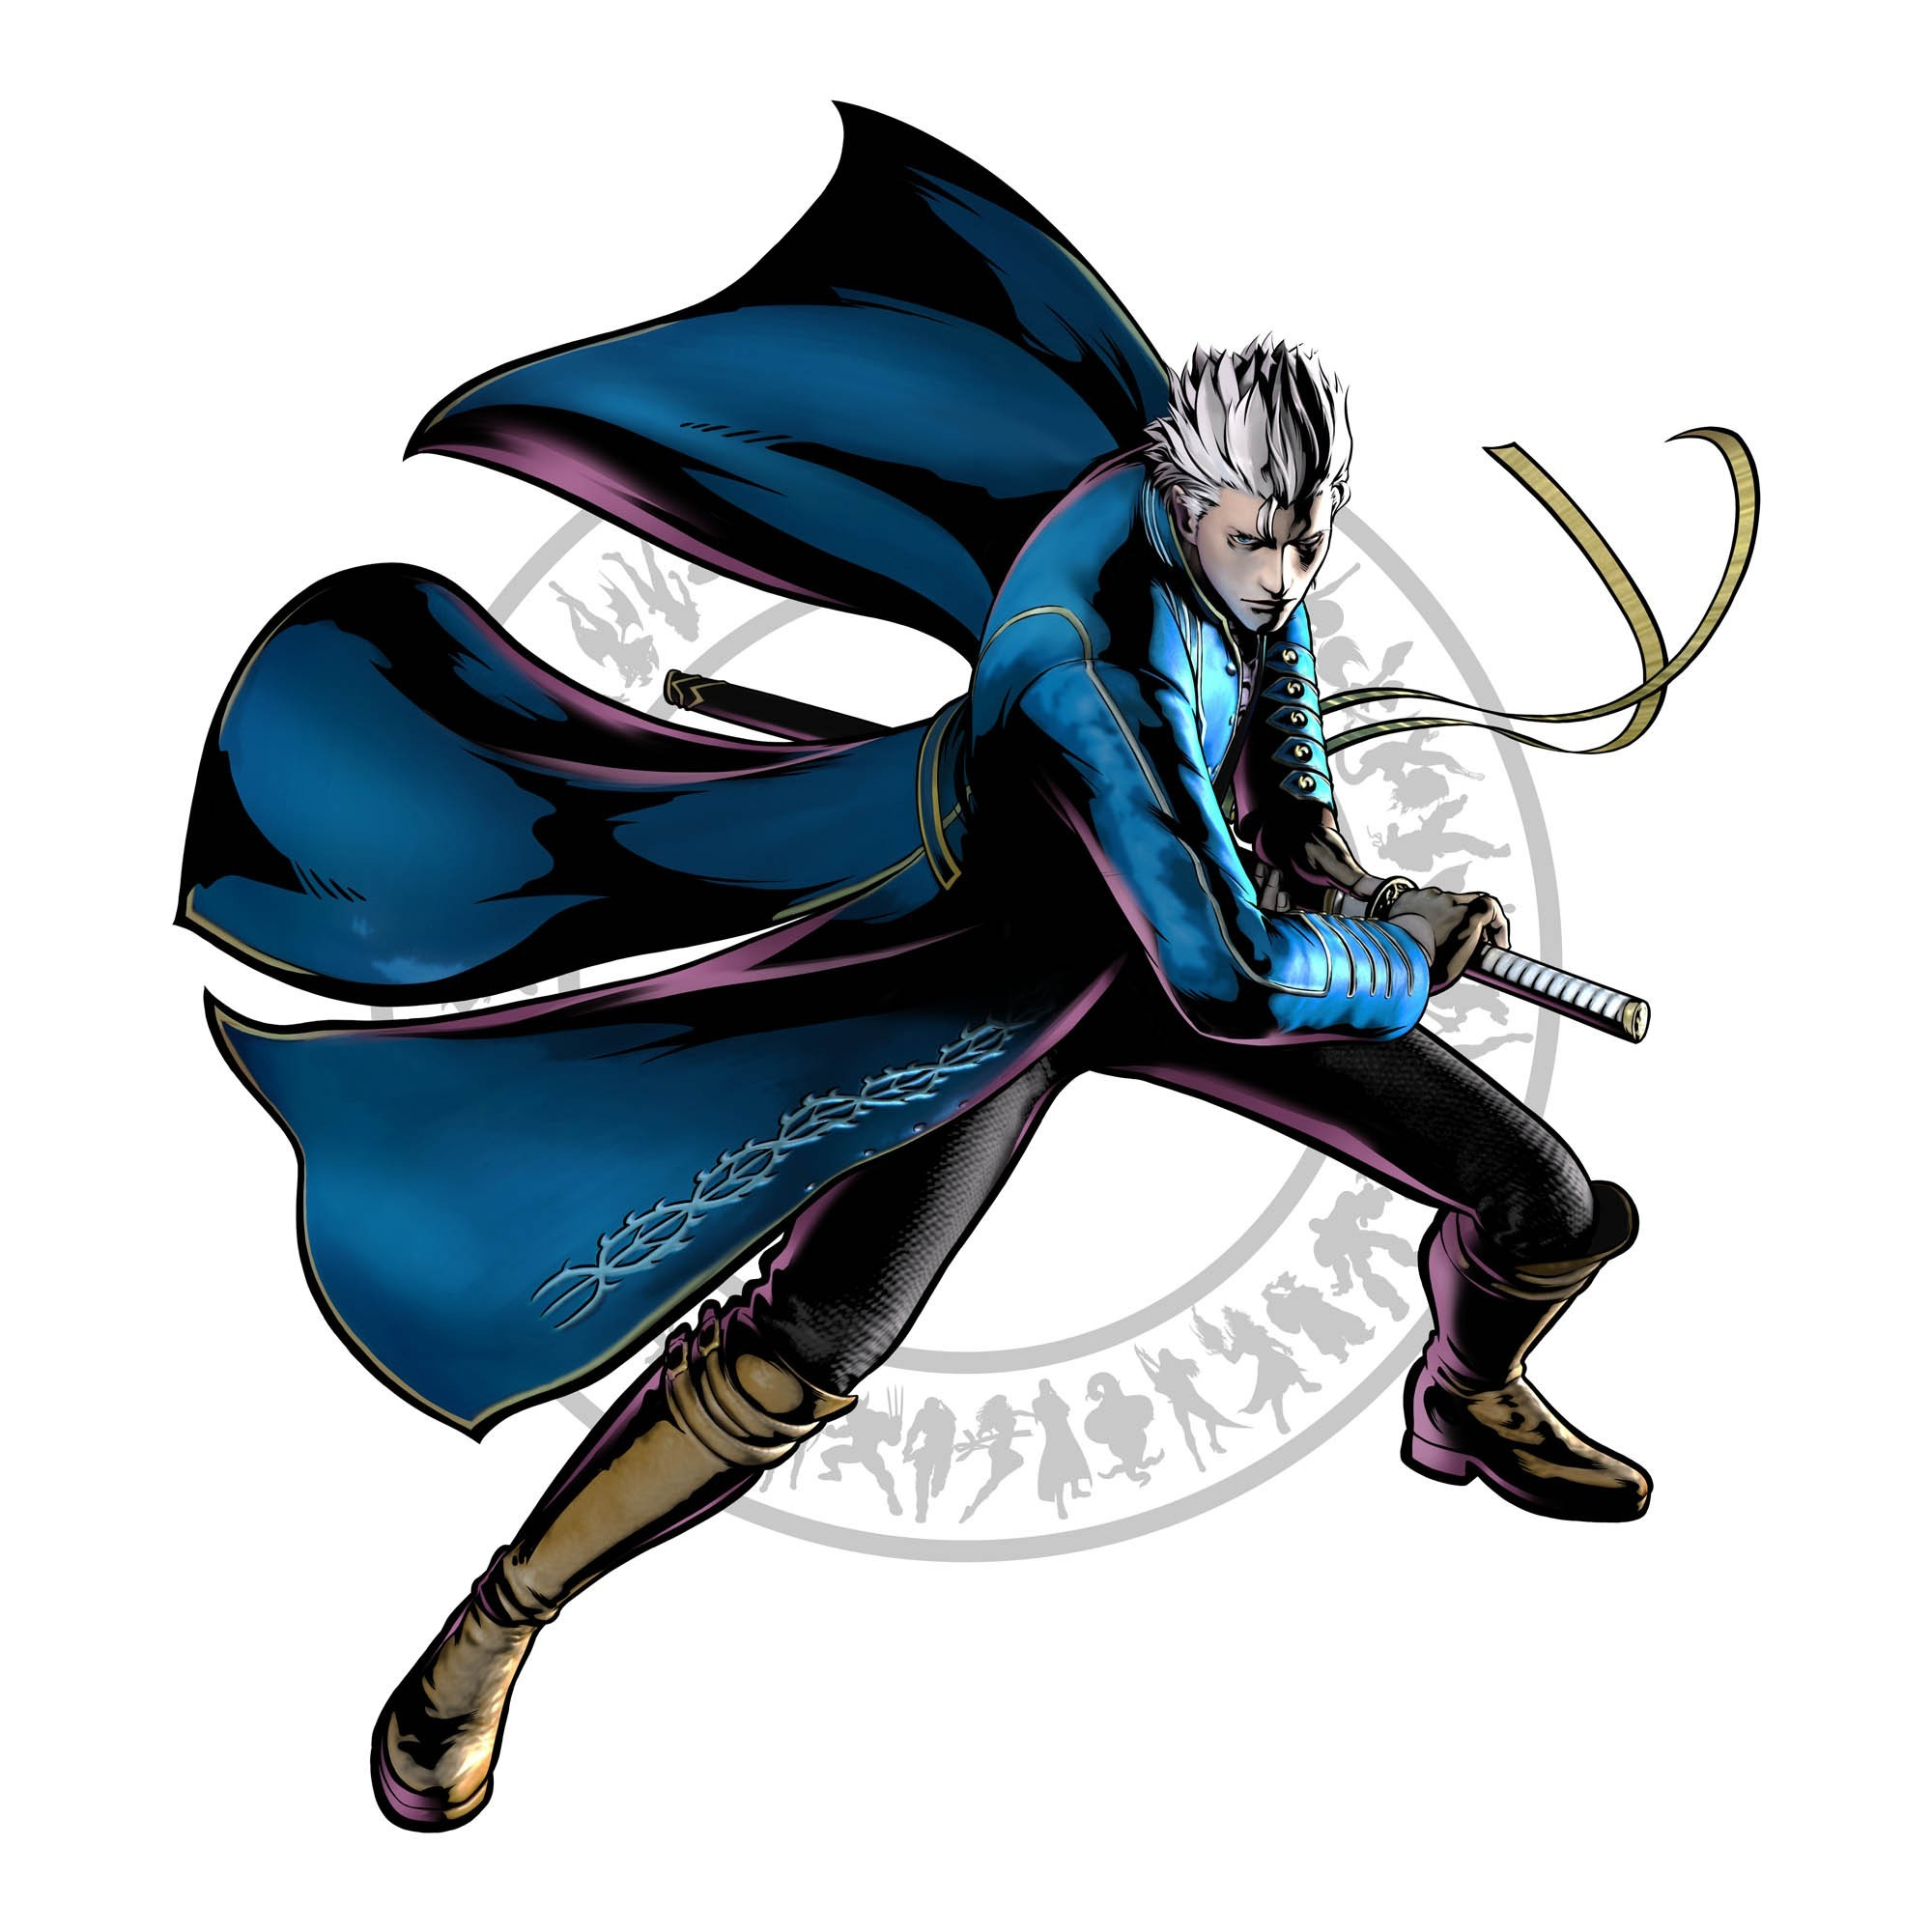 video games artwork vergil HD Wallpaper